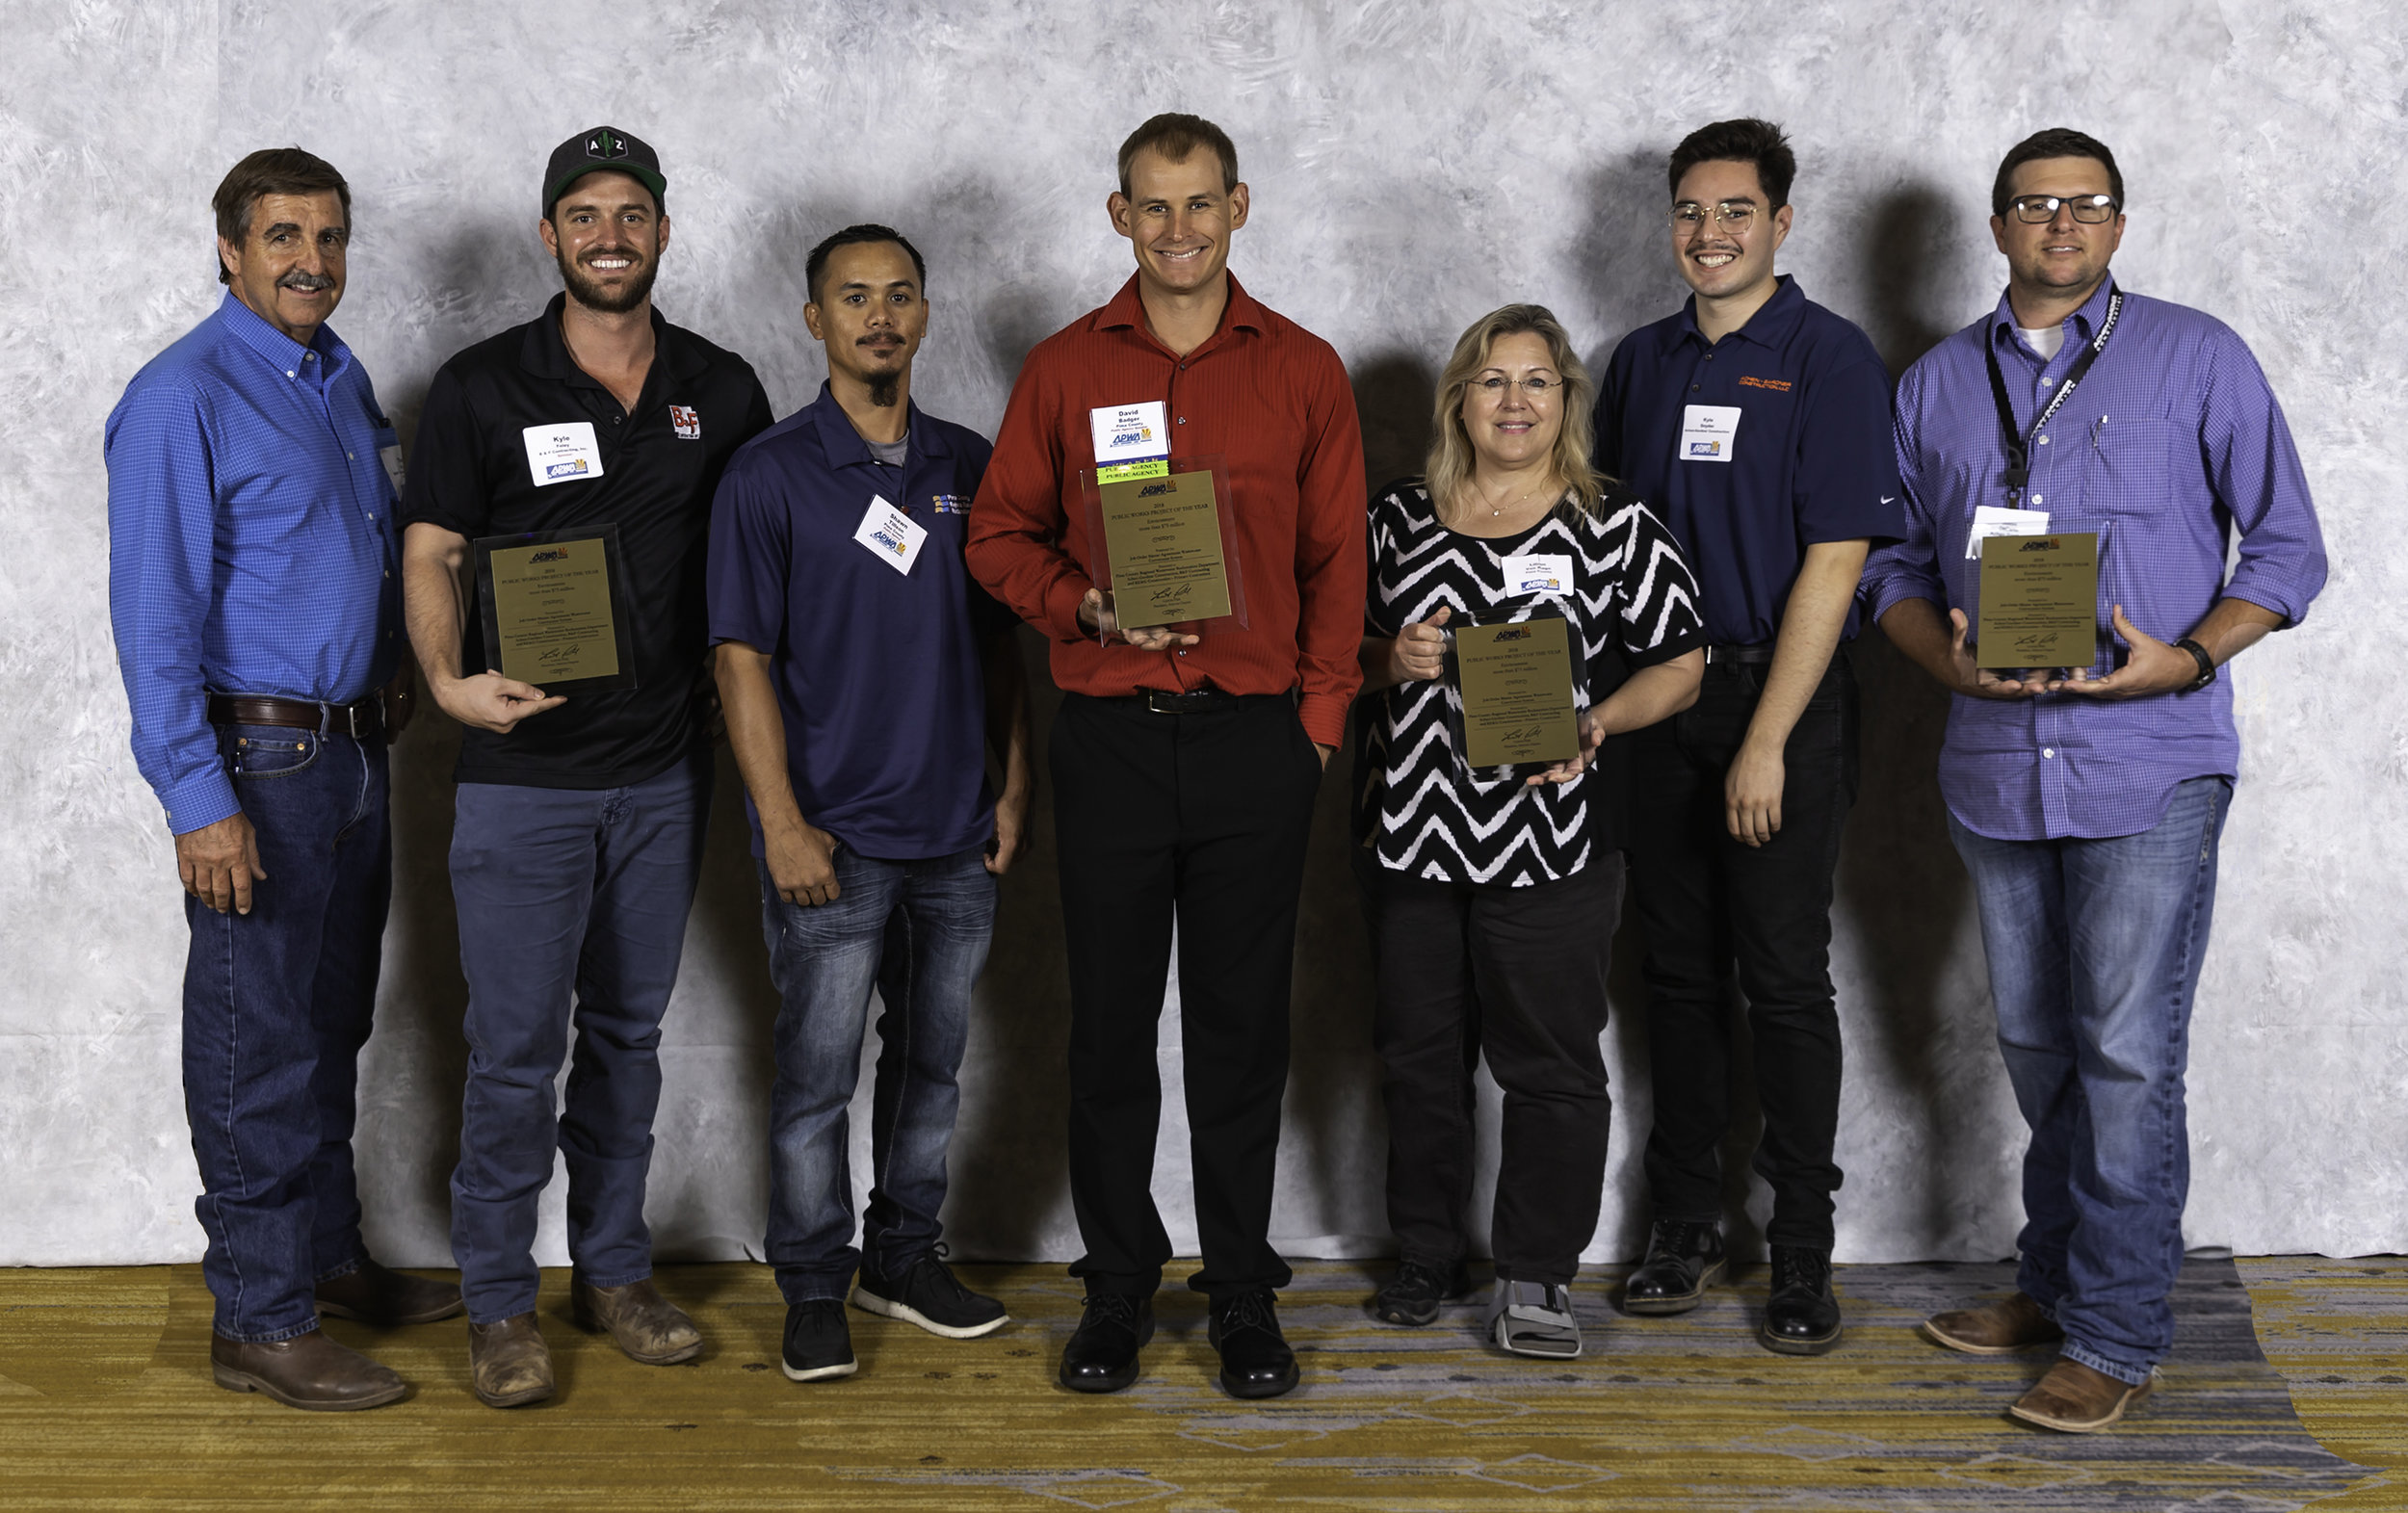 pima award group.jpg